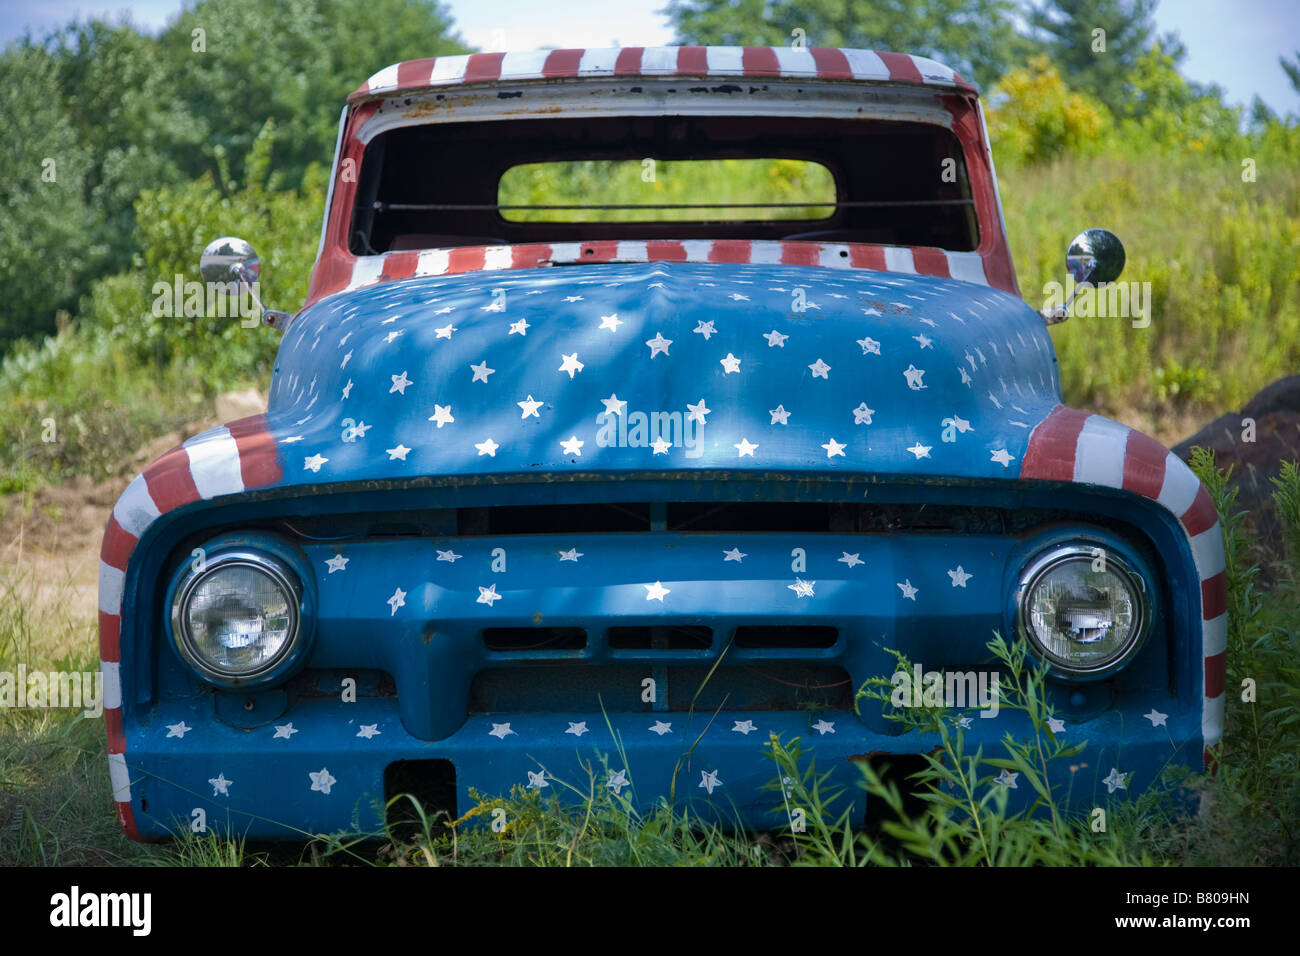 After 9/11, in a show of patriotism, Jay Sawyer and his son painted this old car red, white, and blue. - Stock Image